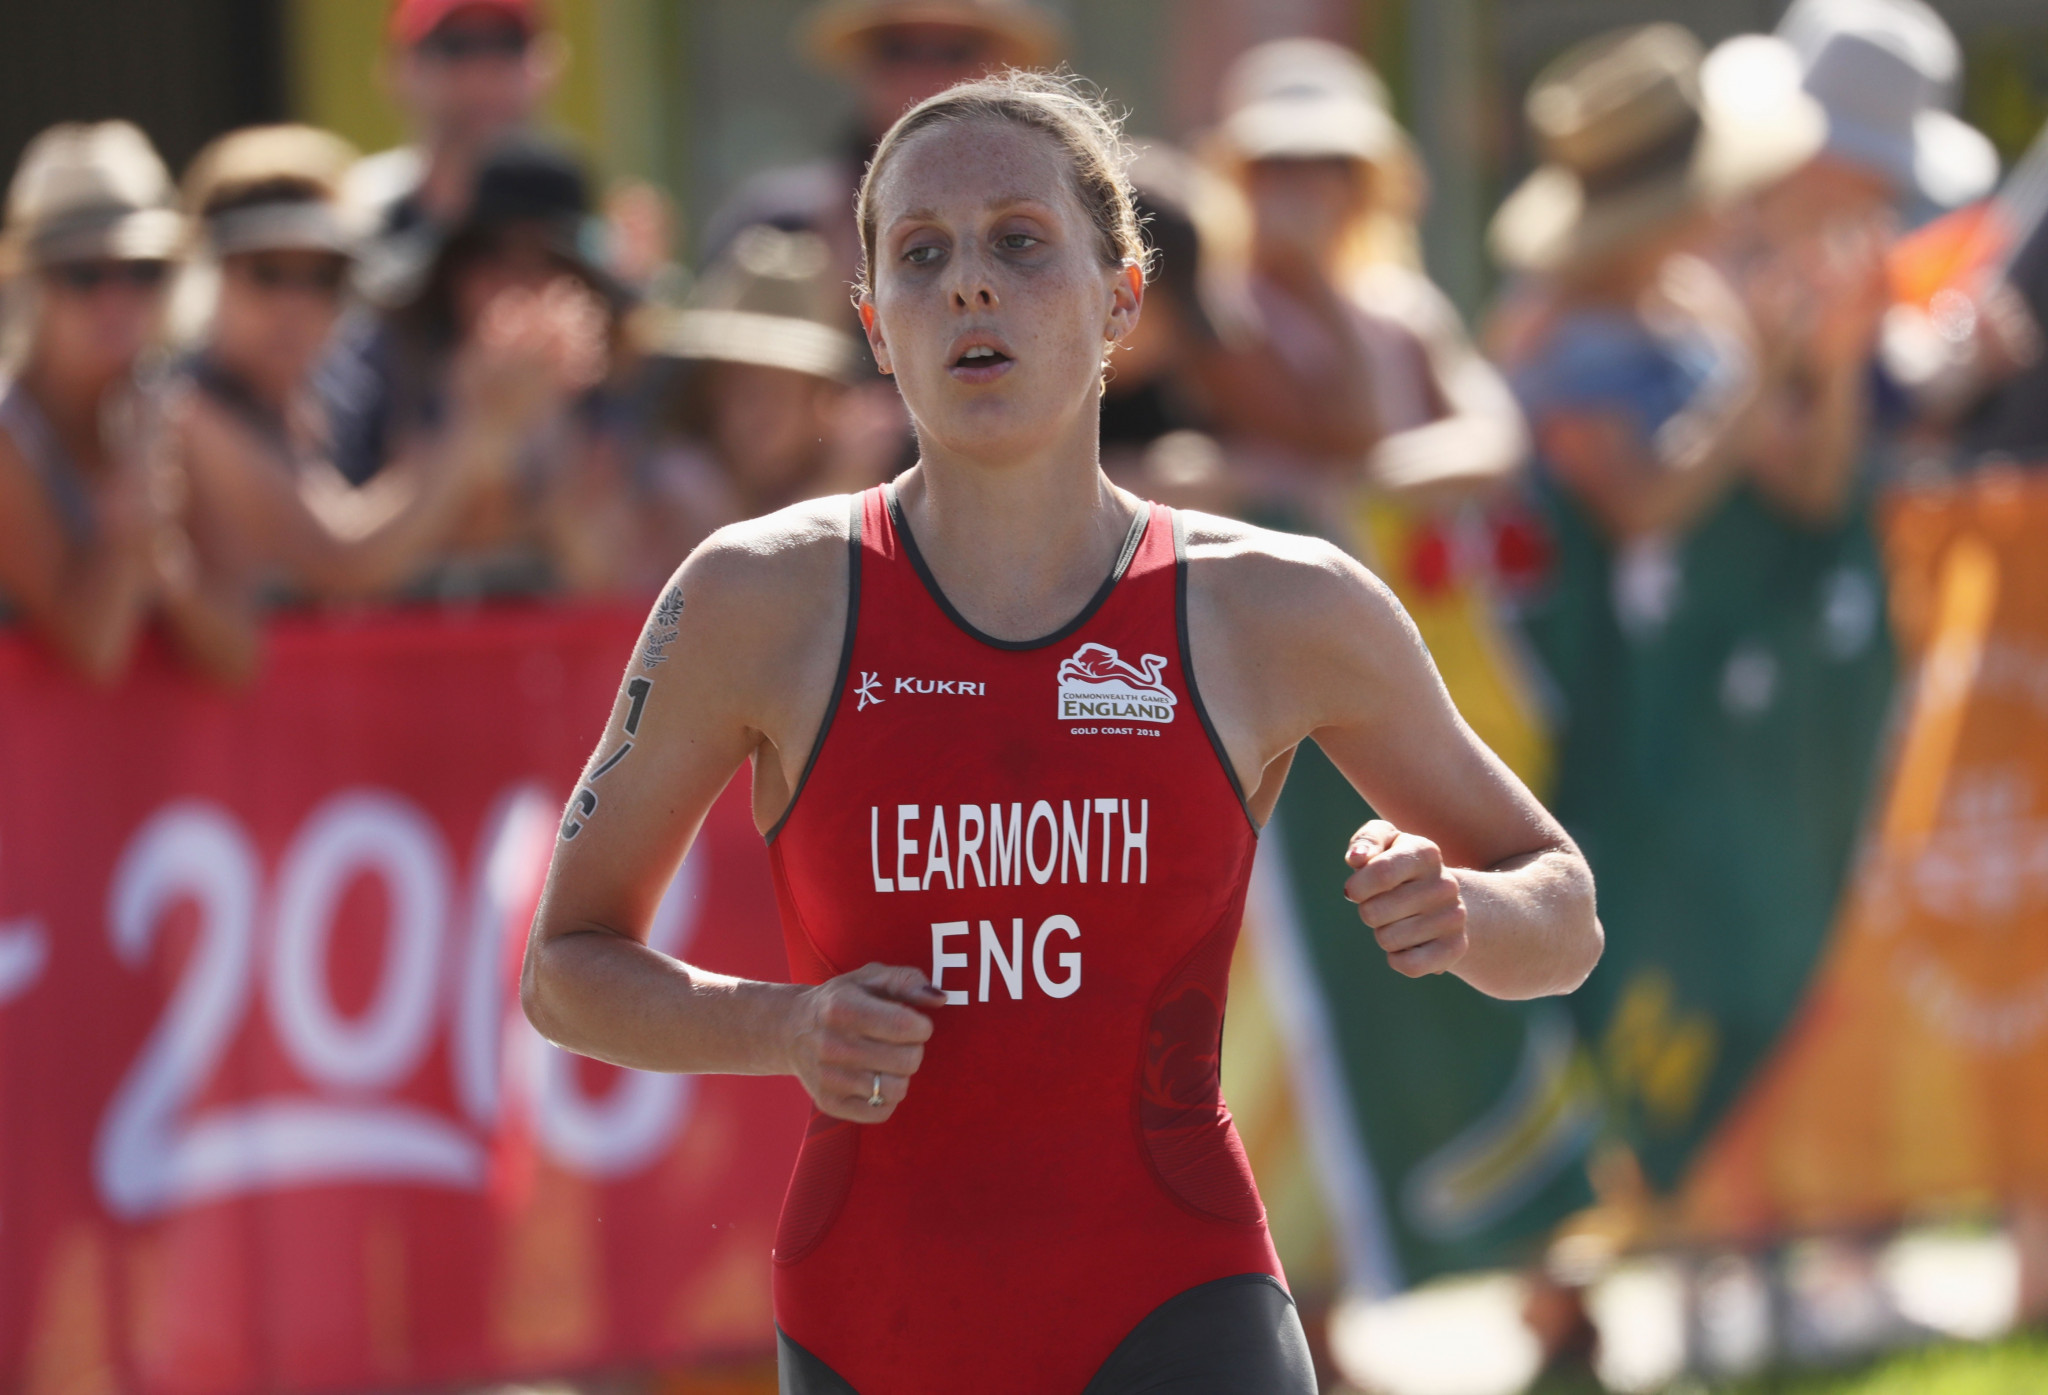 Jessica Learmonth, who won silver at the 2018 Commonwealth Games in Australia, will look to defend her European title in Glasgow tomorrow ©Getty Images